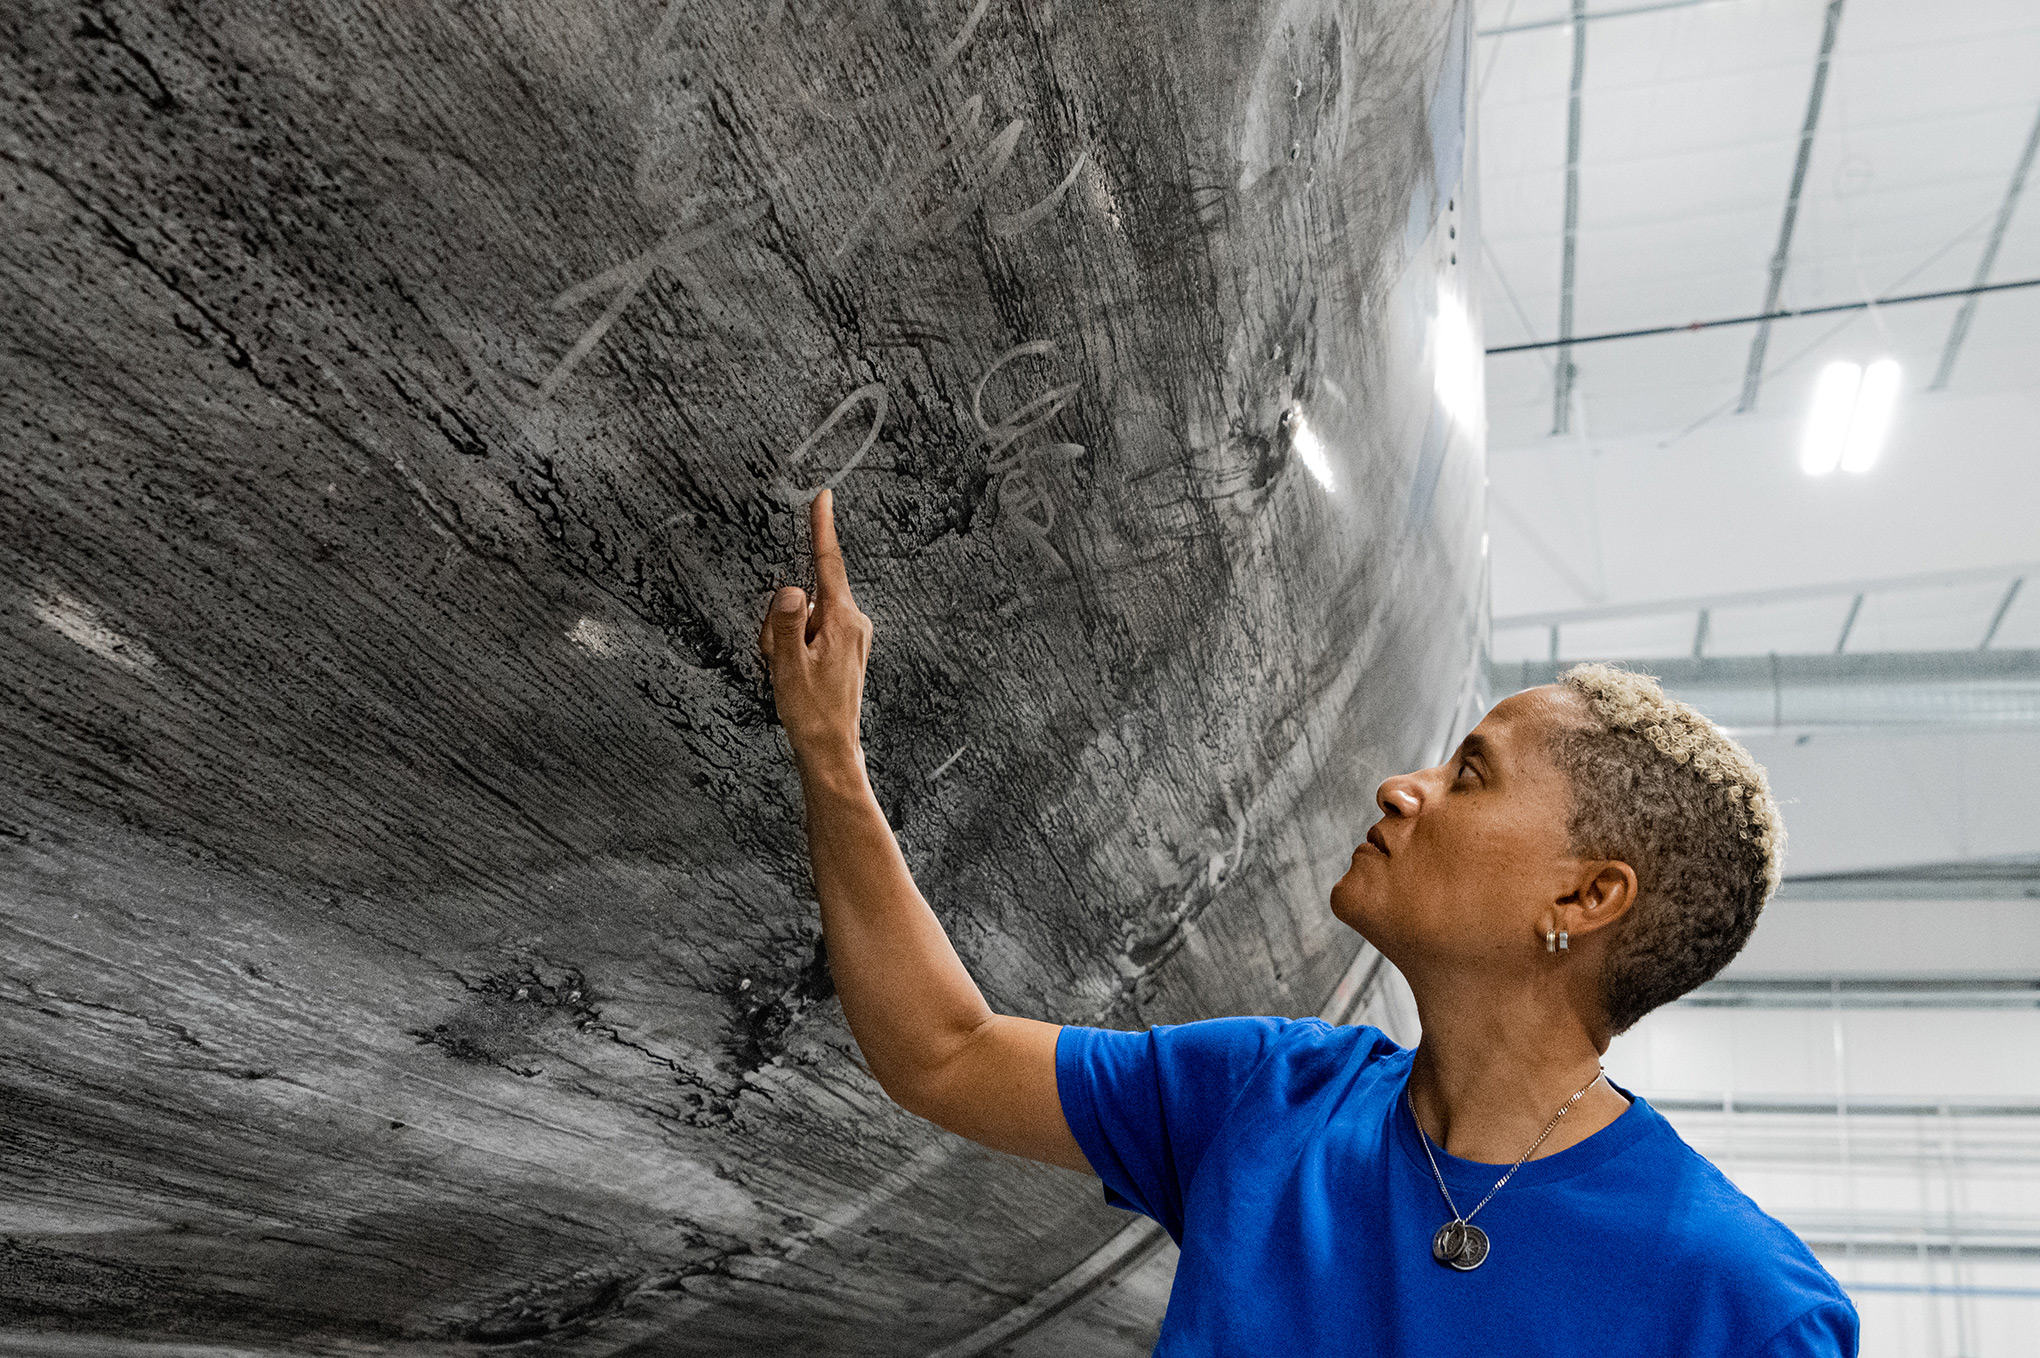 Dr. Sian Proctor signing the Falcon 9 reusable rocket booster that will launch the Inspiration4 crew into space. It has become a new tradition for SpaceX crews to sign their reusable vehicles.